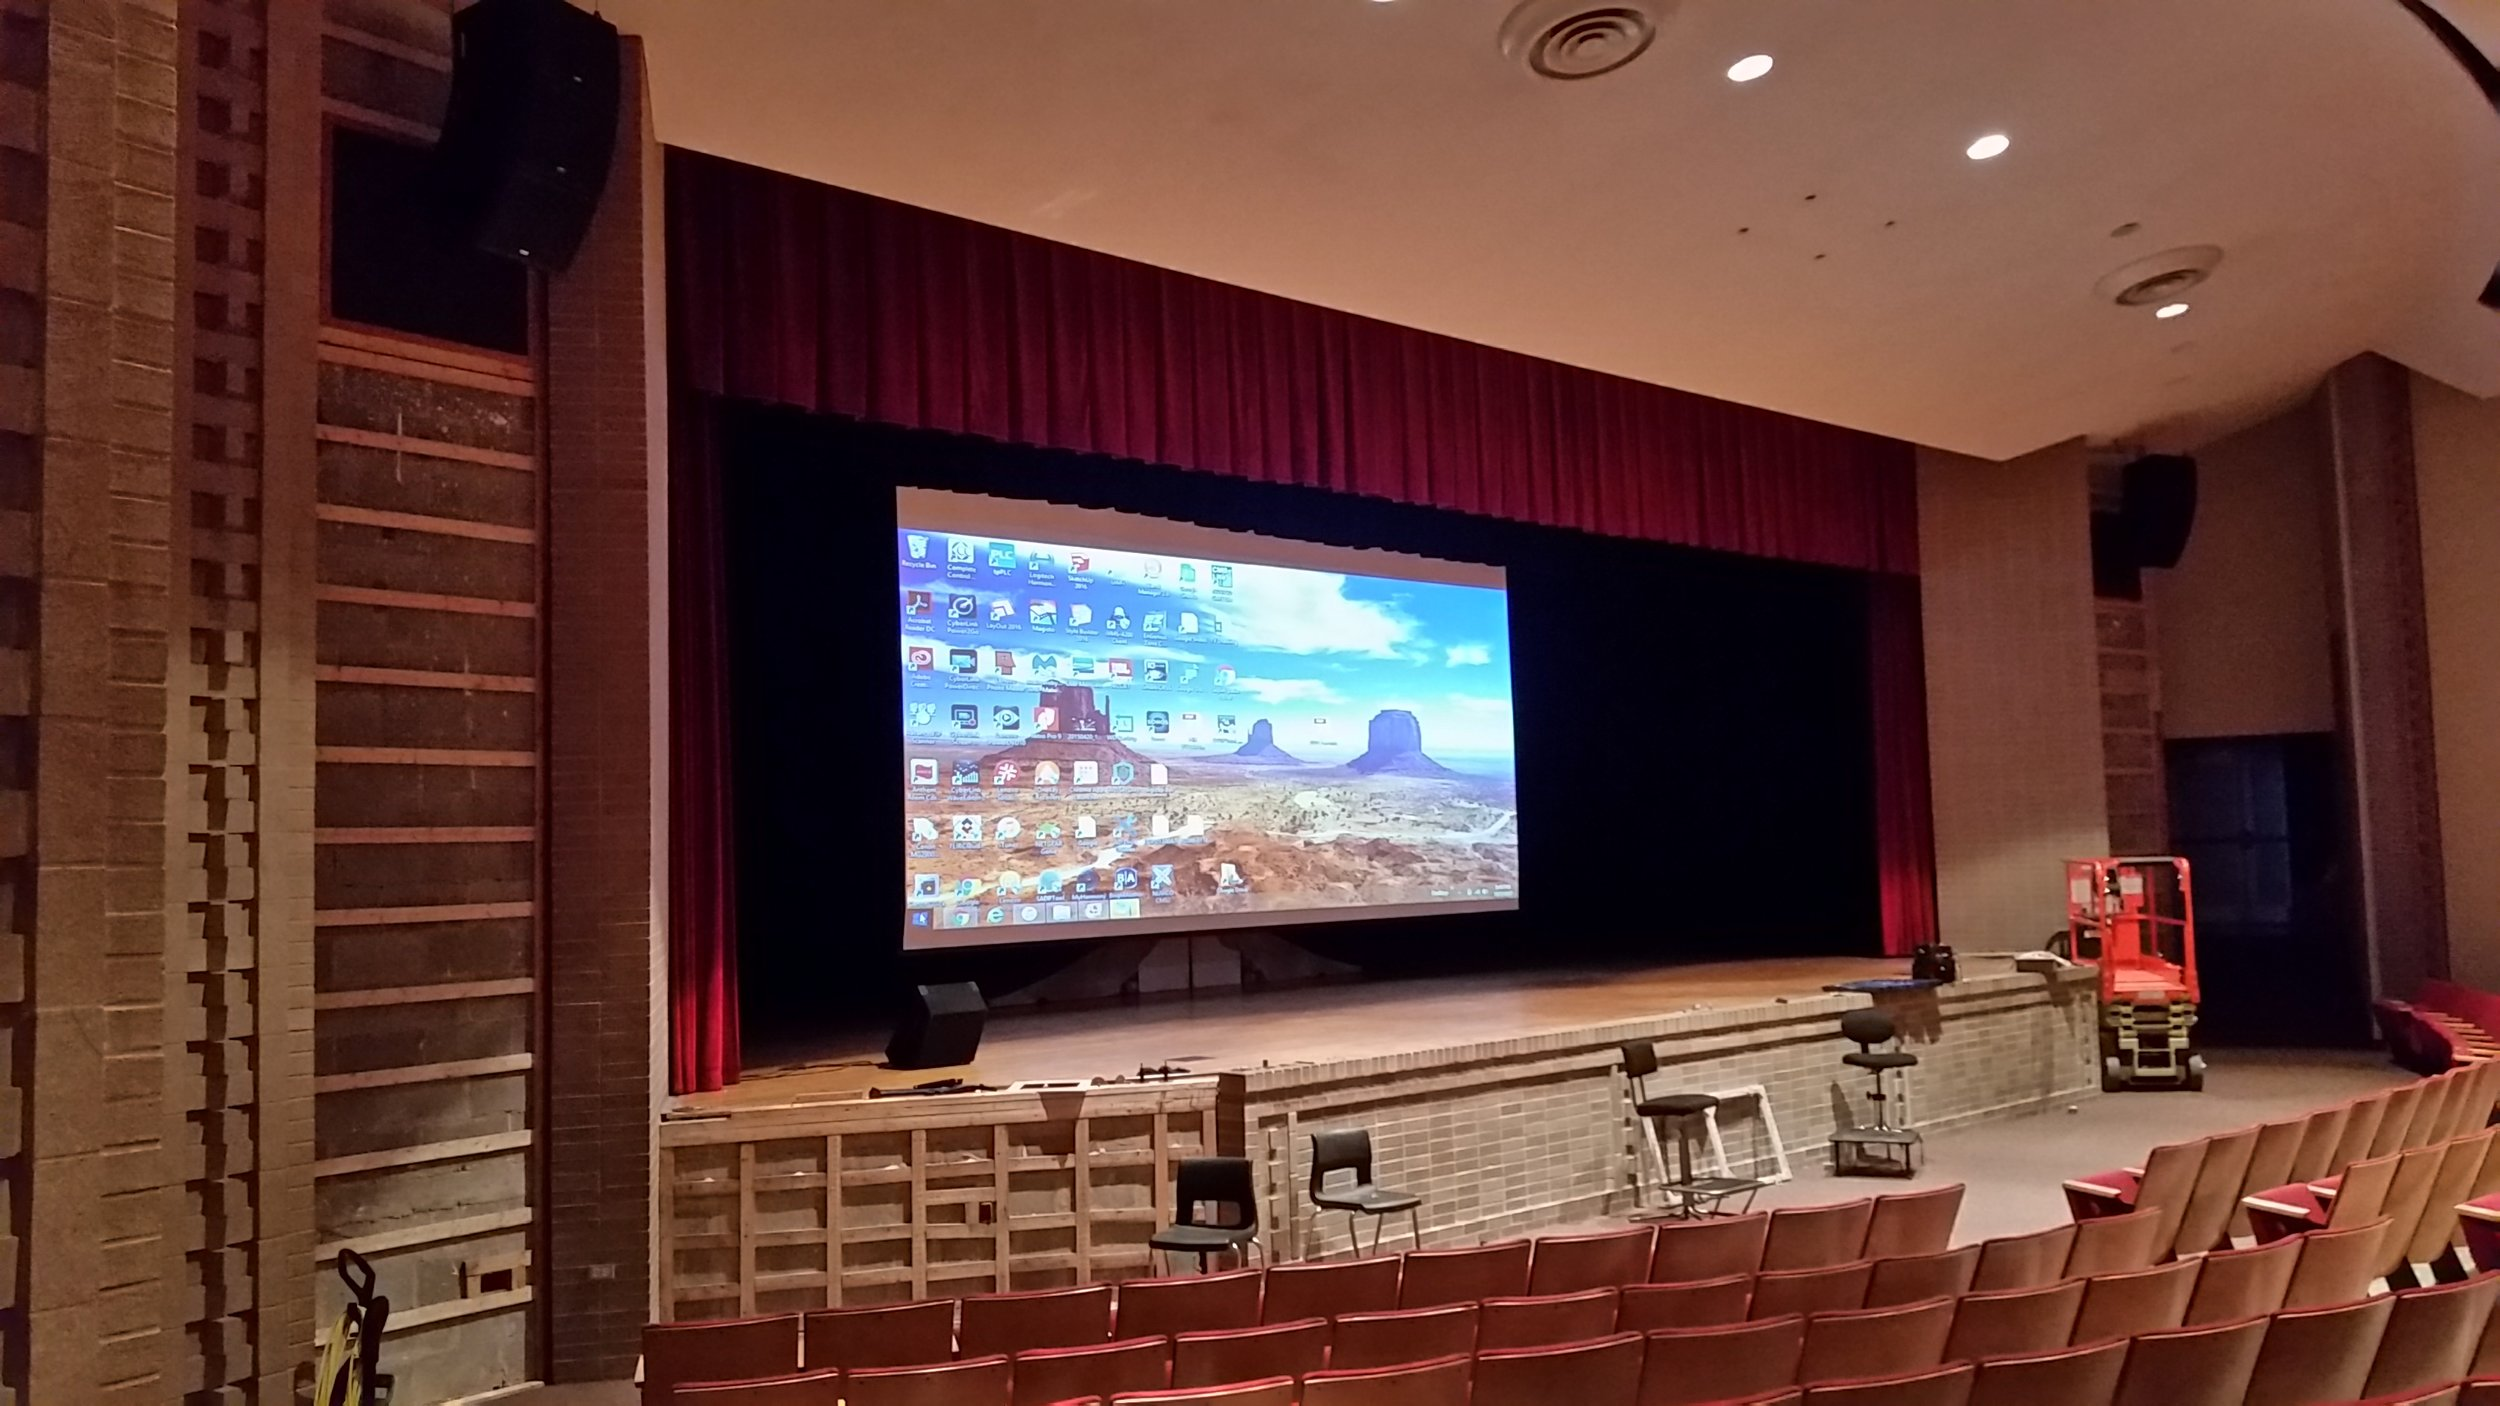 School auditorium sound and video system